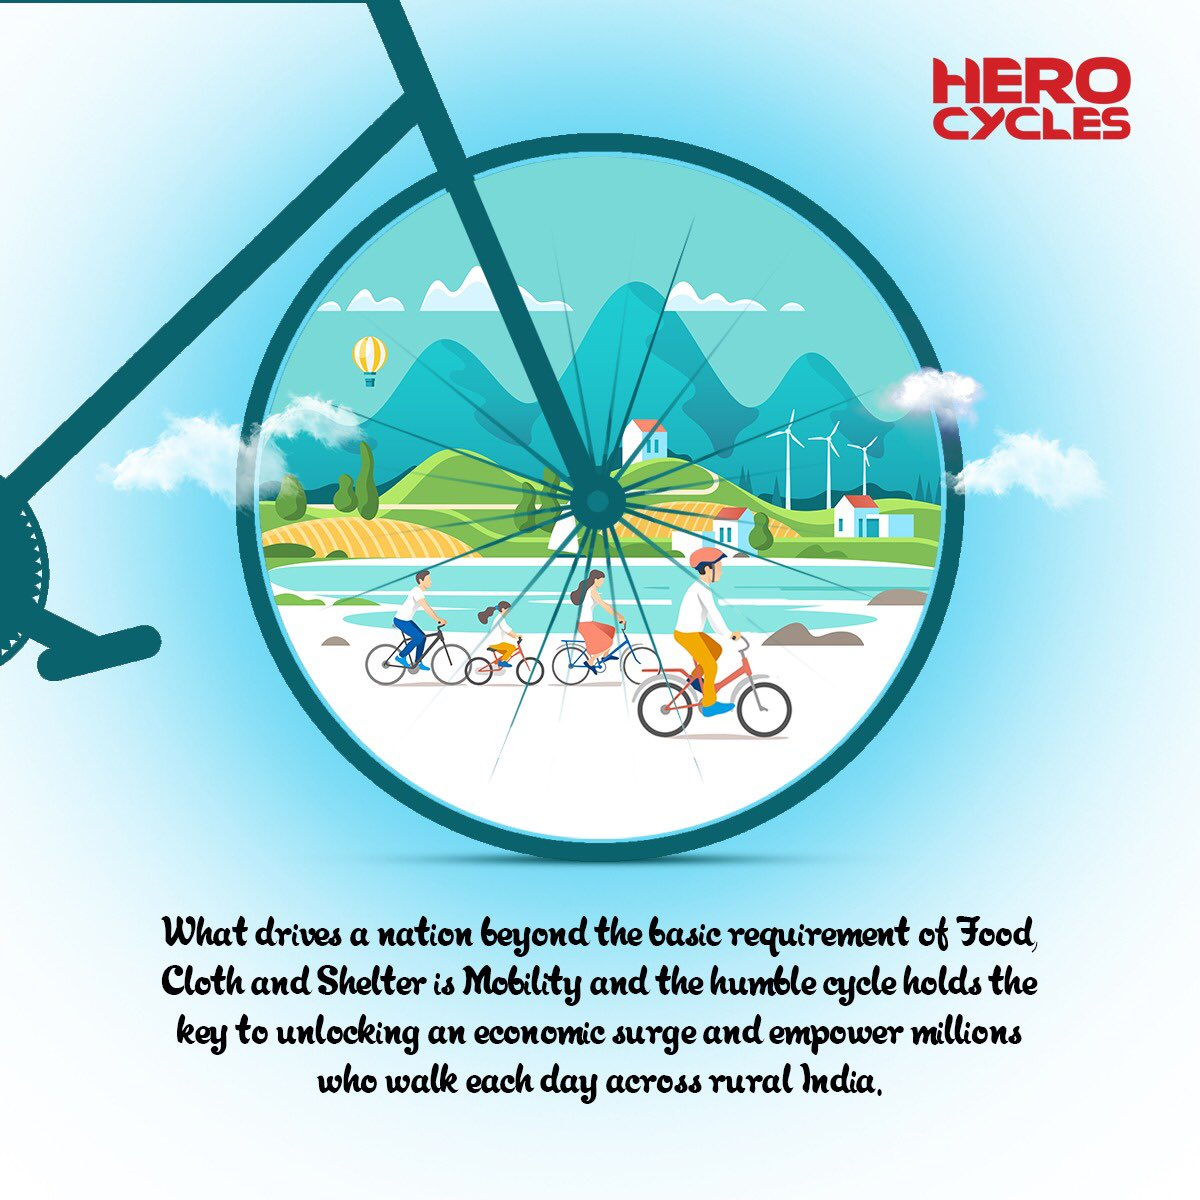 Cycle of Life| Hero Cycles|India's Best Brand of Cycles